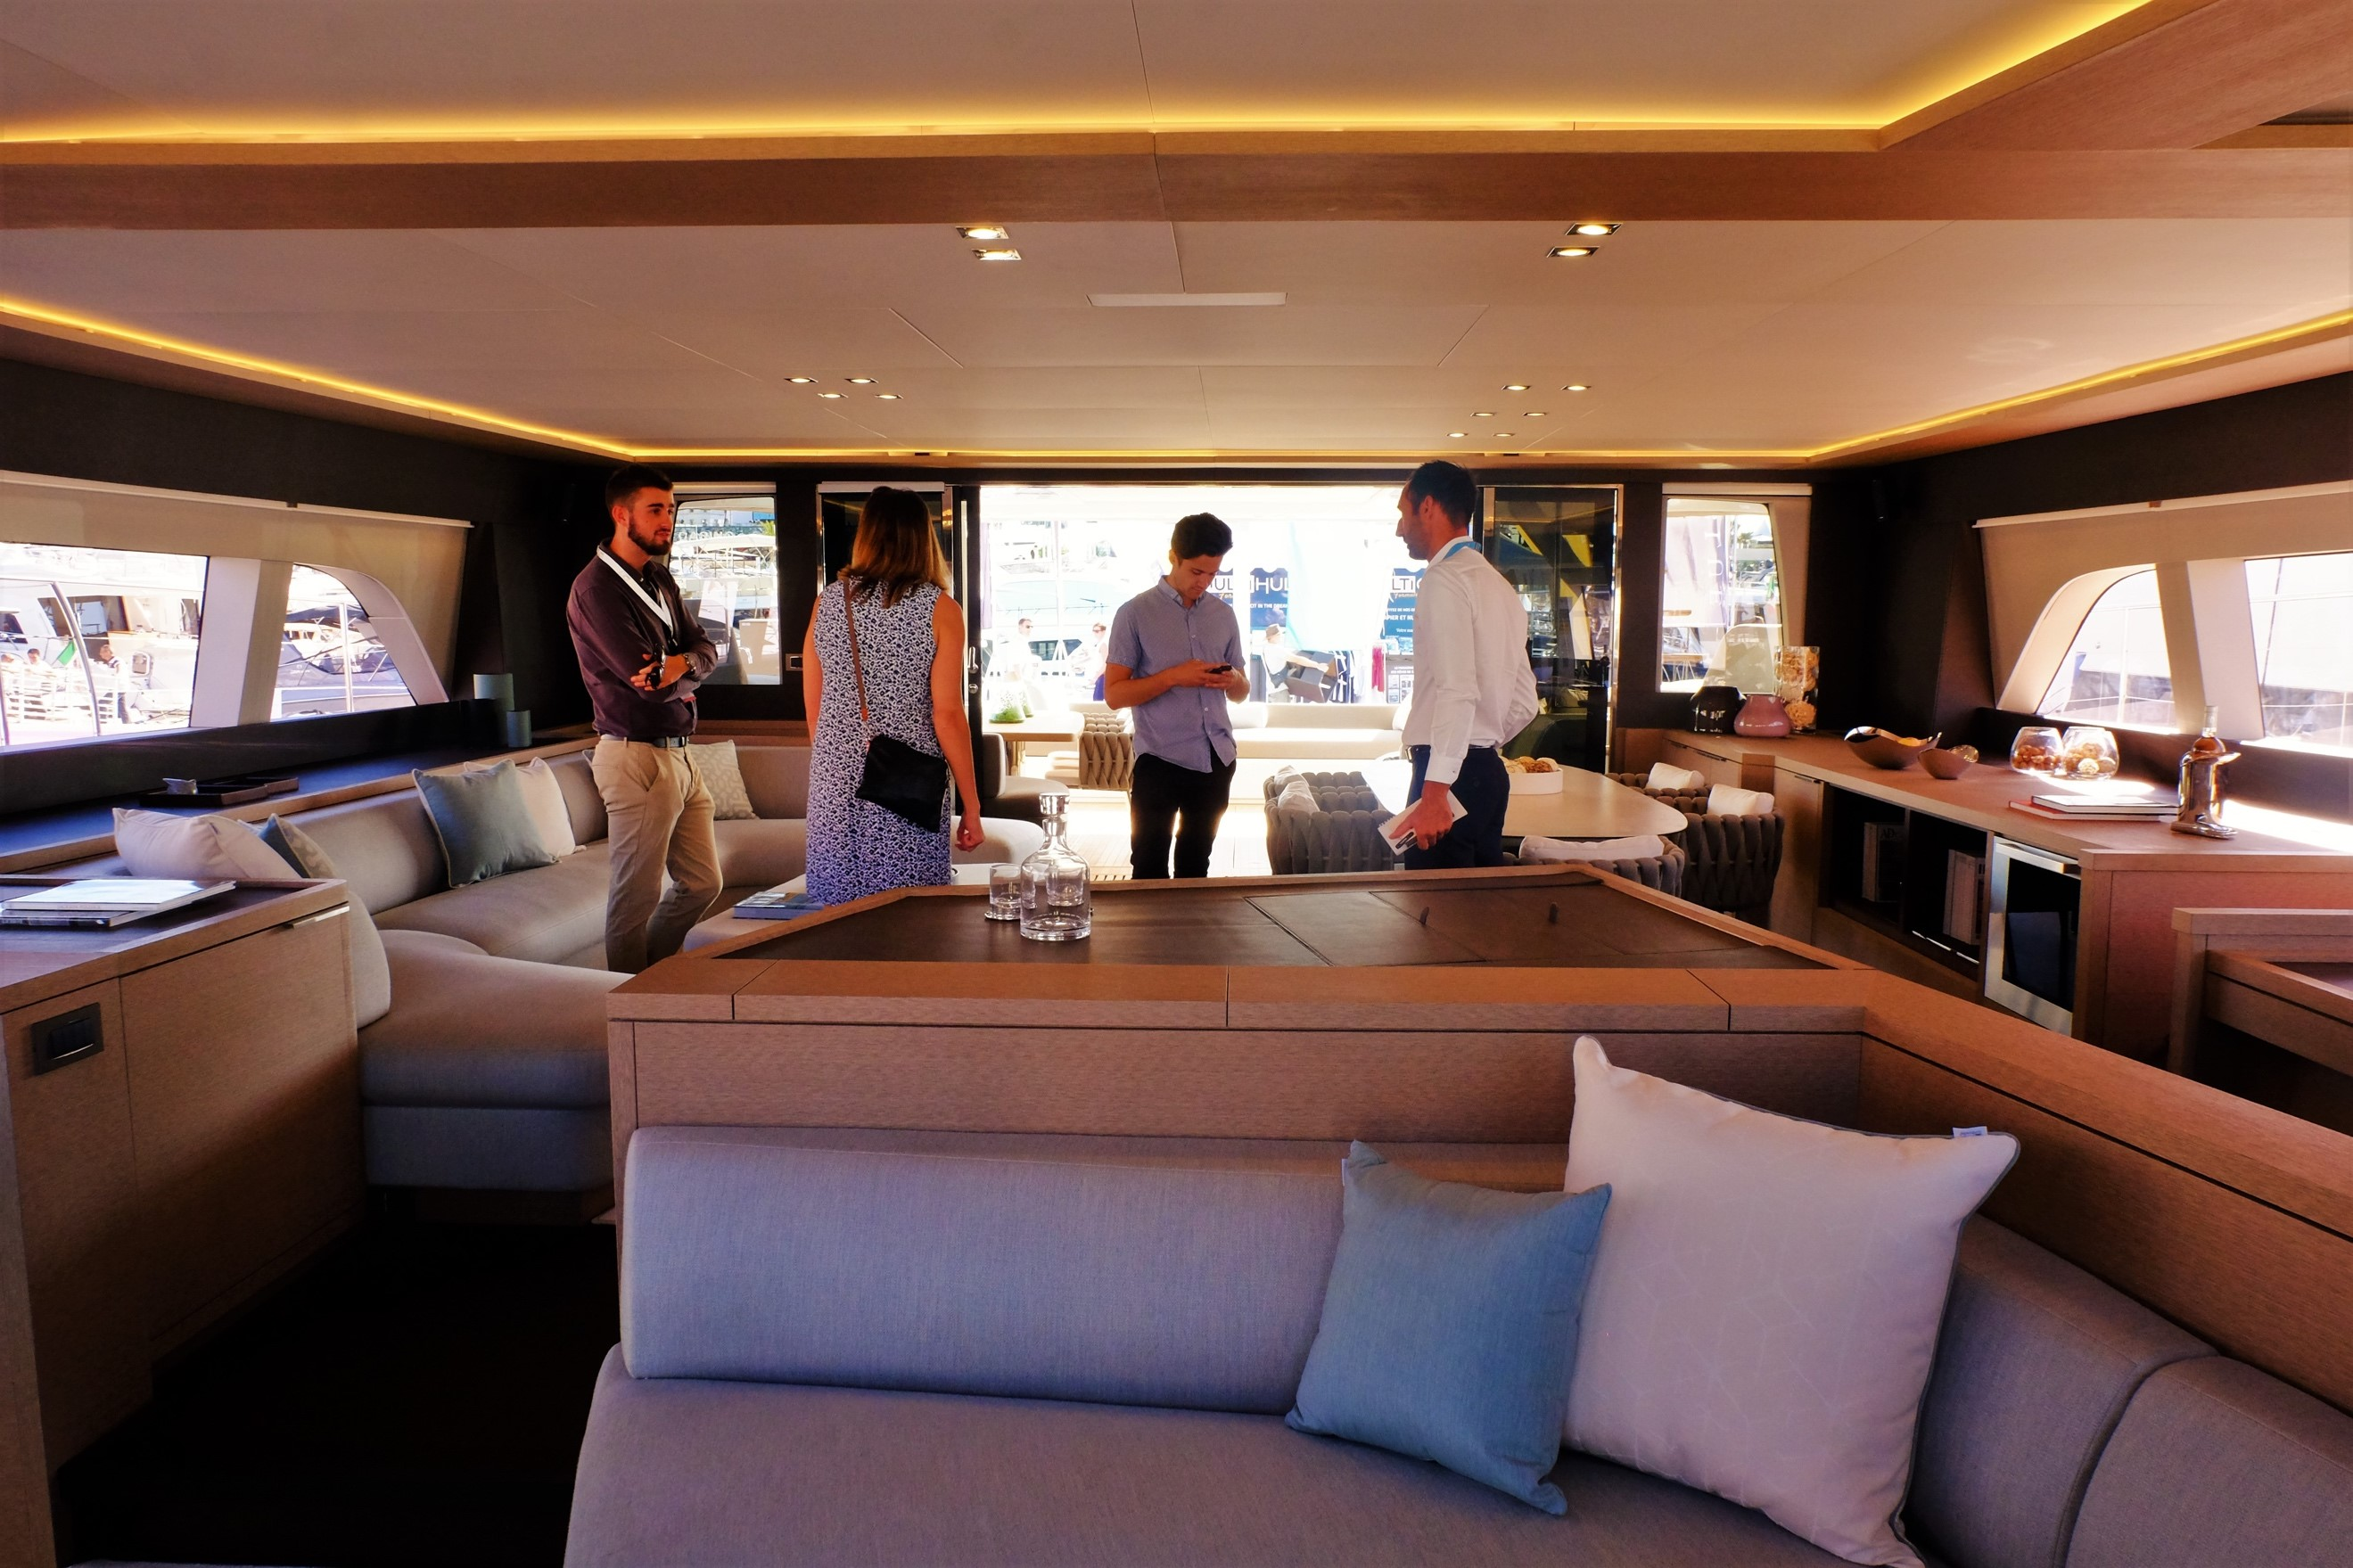 The Innovative Design Of Saloon Allows For Further Sofa Space Whilst Keeping Captains Controls Separate From Guests